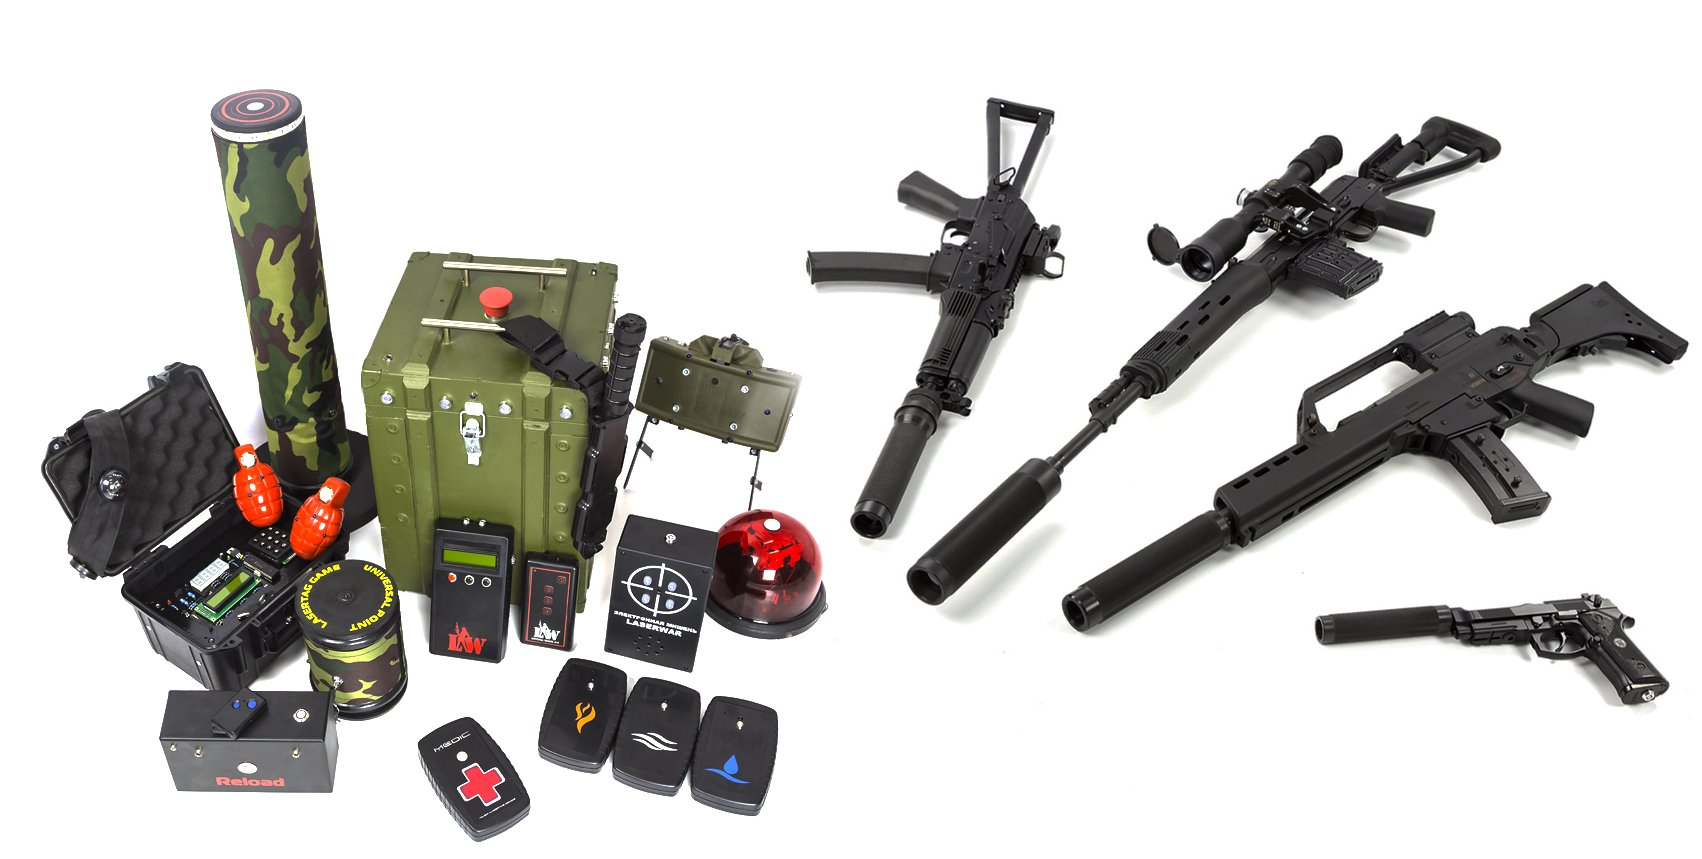 Outdoor Laser Tag Equipment From Laserwar